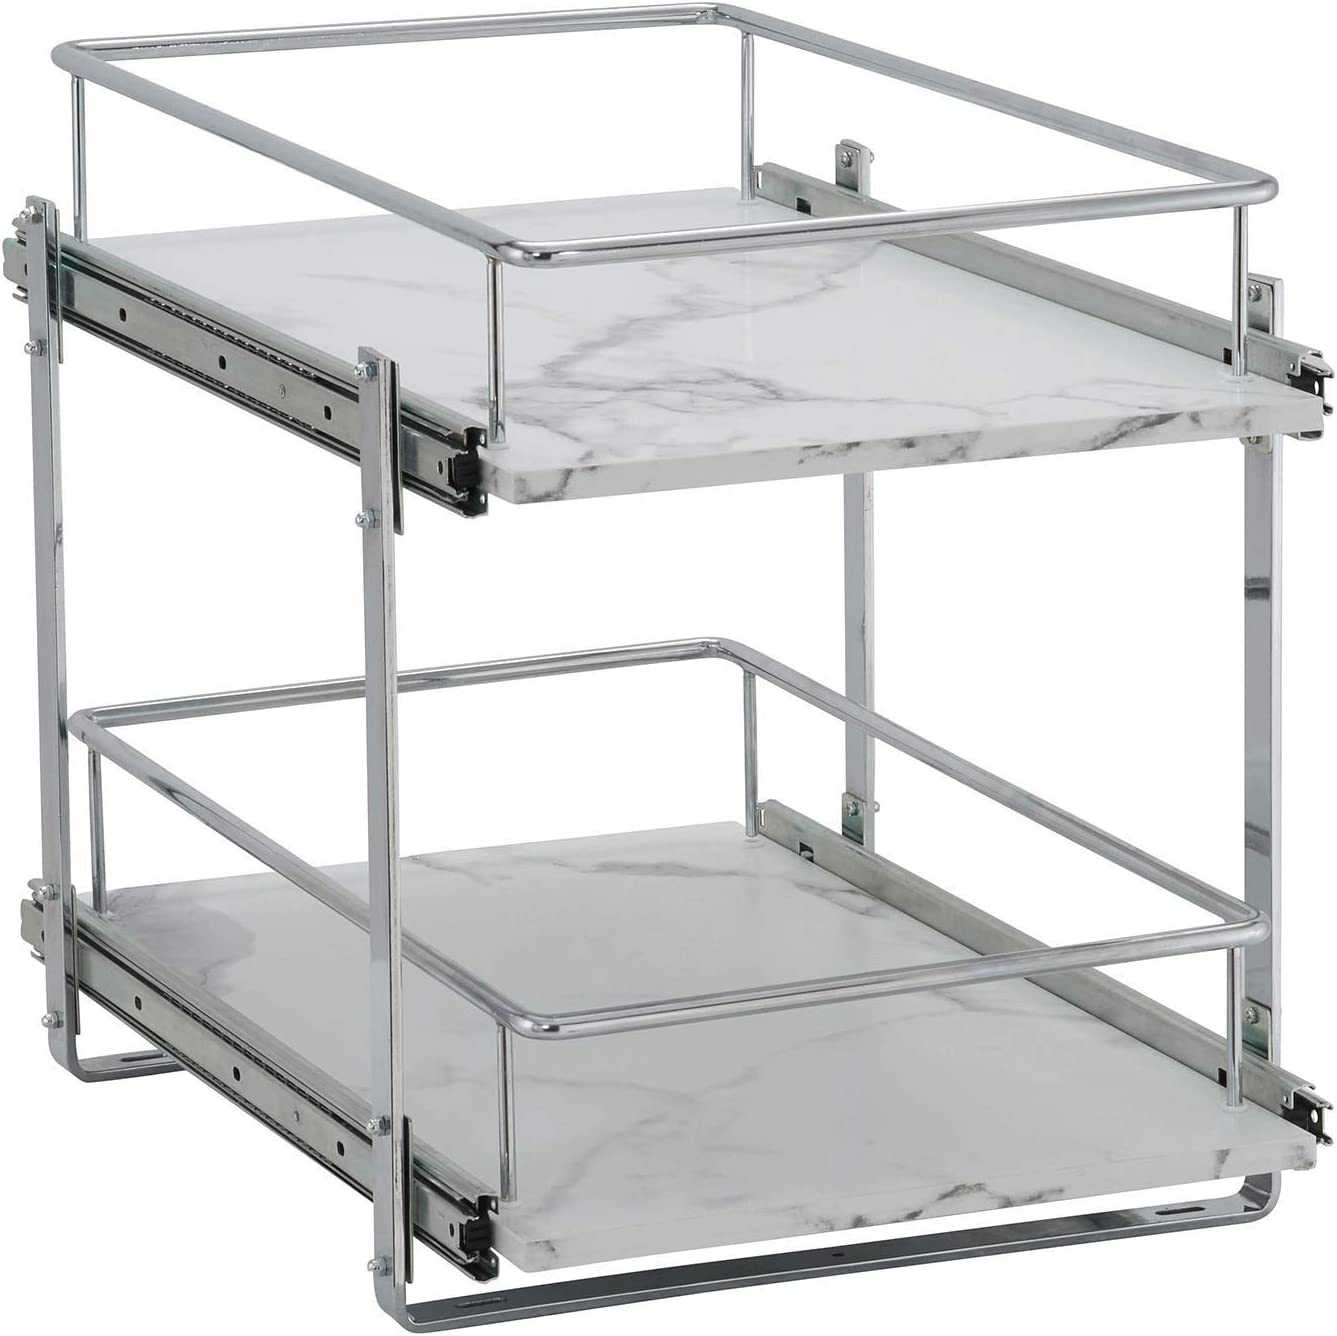 Amazon Com Household Essentials Faux Marble C53345 1 Glidez 2 Tier Kitchen Cabinet Organizer Pull Out Shelves For Storage 22 In D X 14 5 In W X 17 In H Wide Home Kitchen